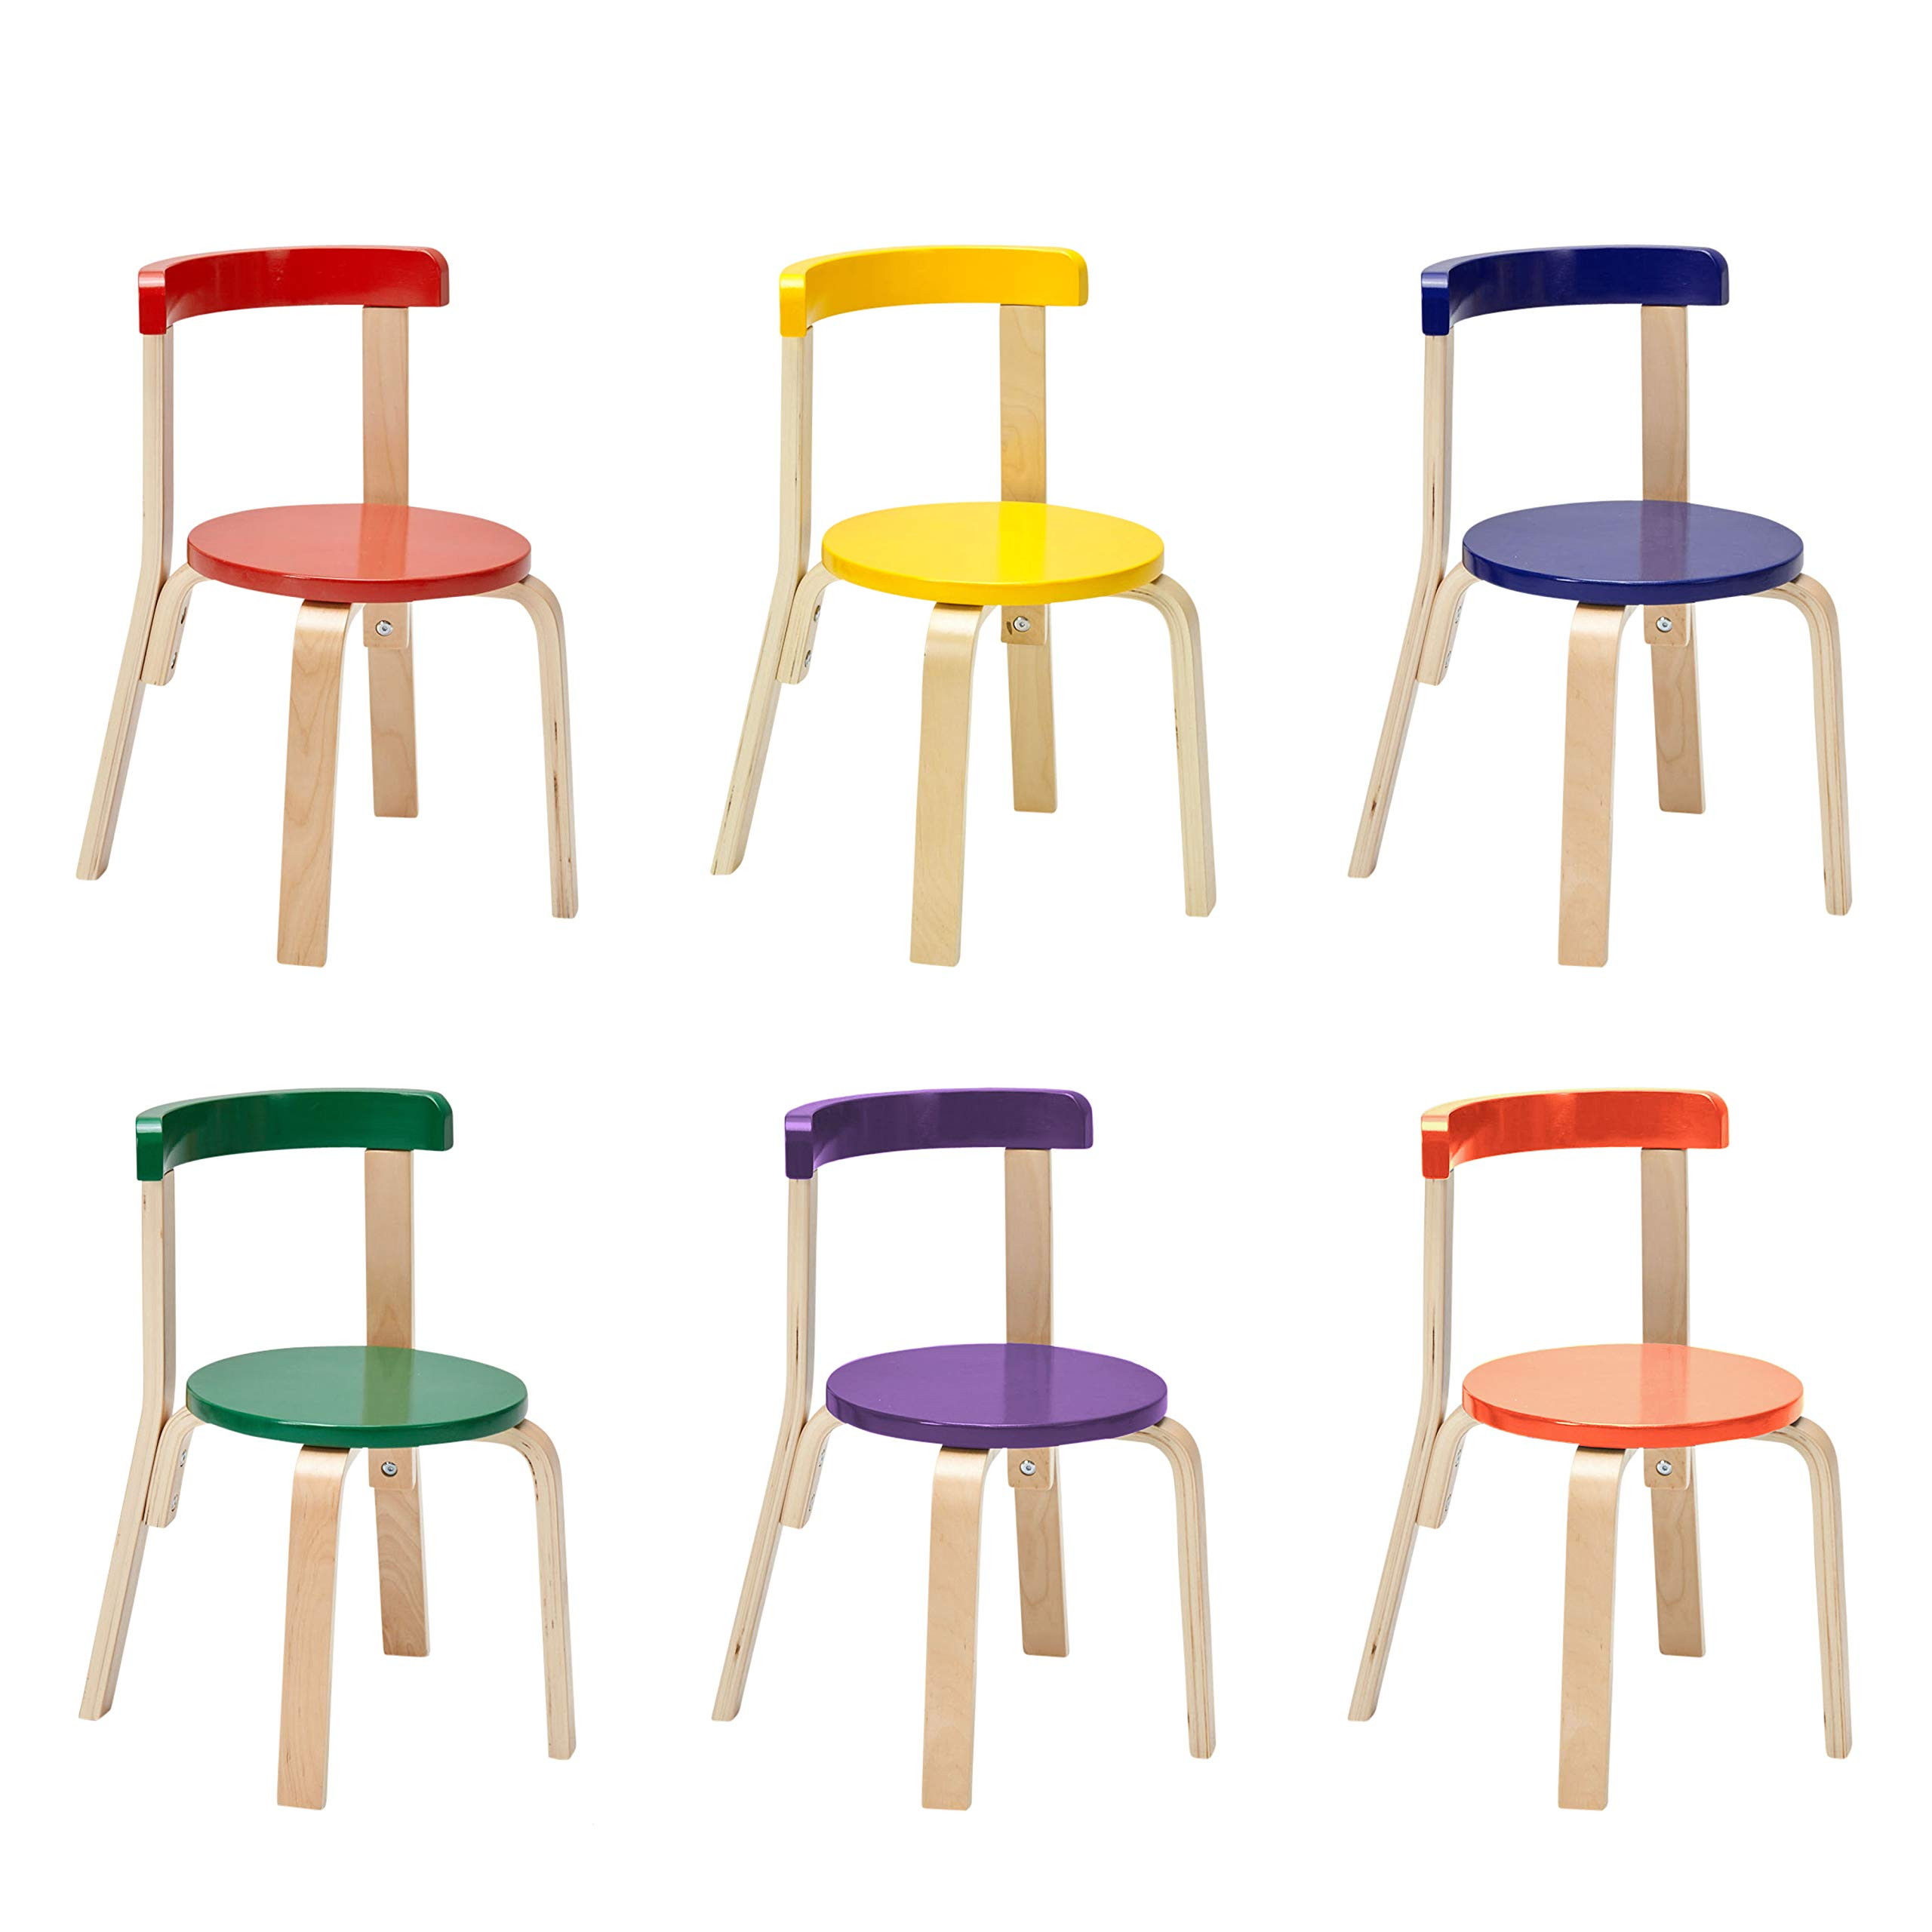 ECR4Kids Bentwood Curved Back Chair 6-Pack, Sturdy Backed Stools for Kids and Toddlers, Assorted Colors (Set of 6) by ECR4Kids